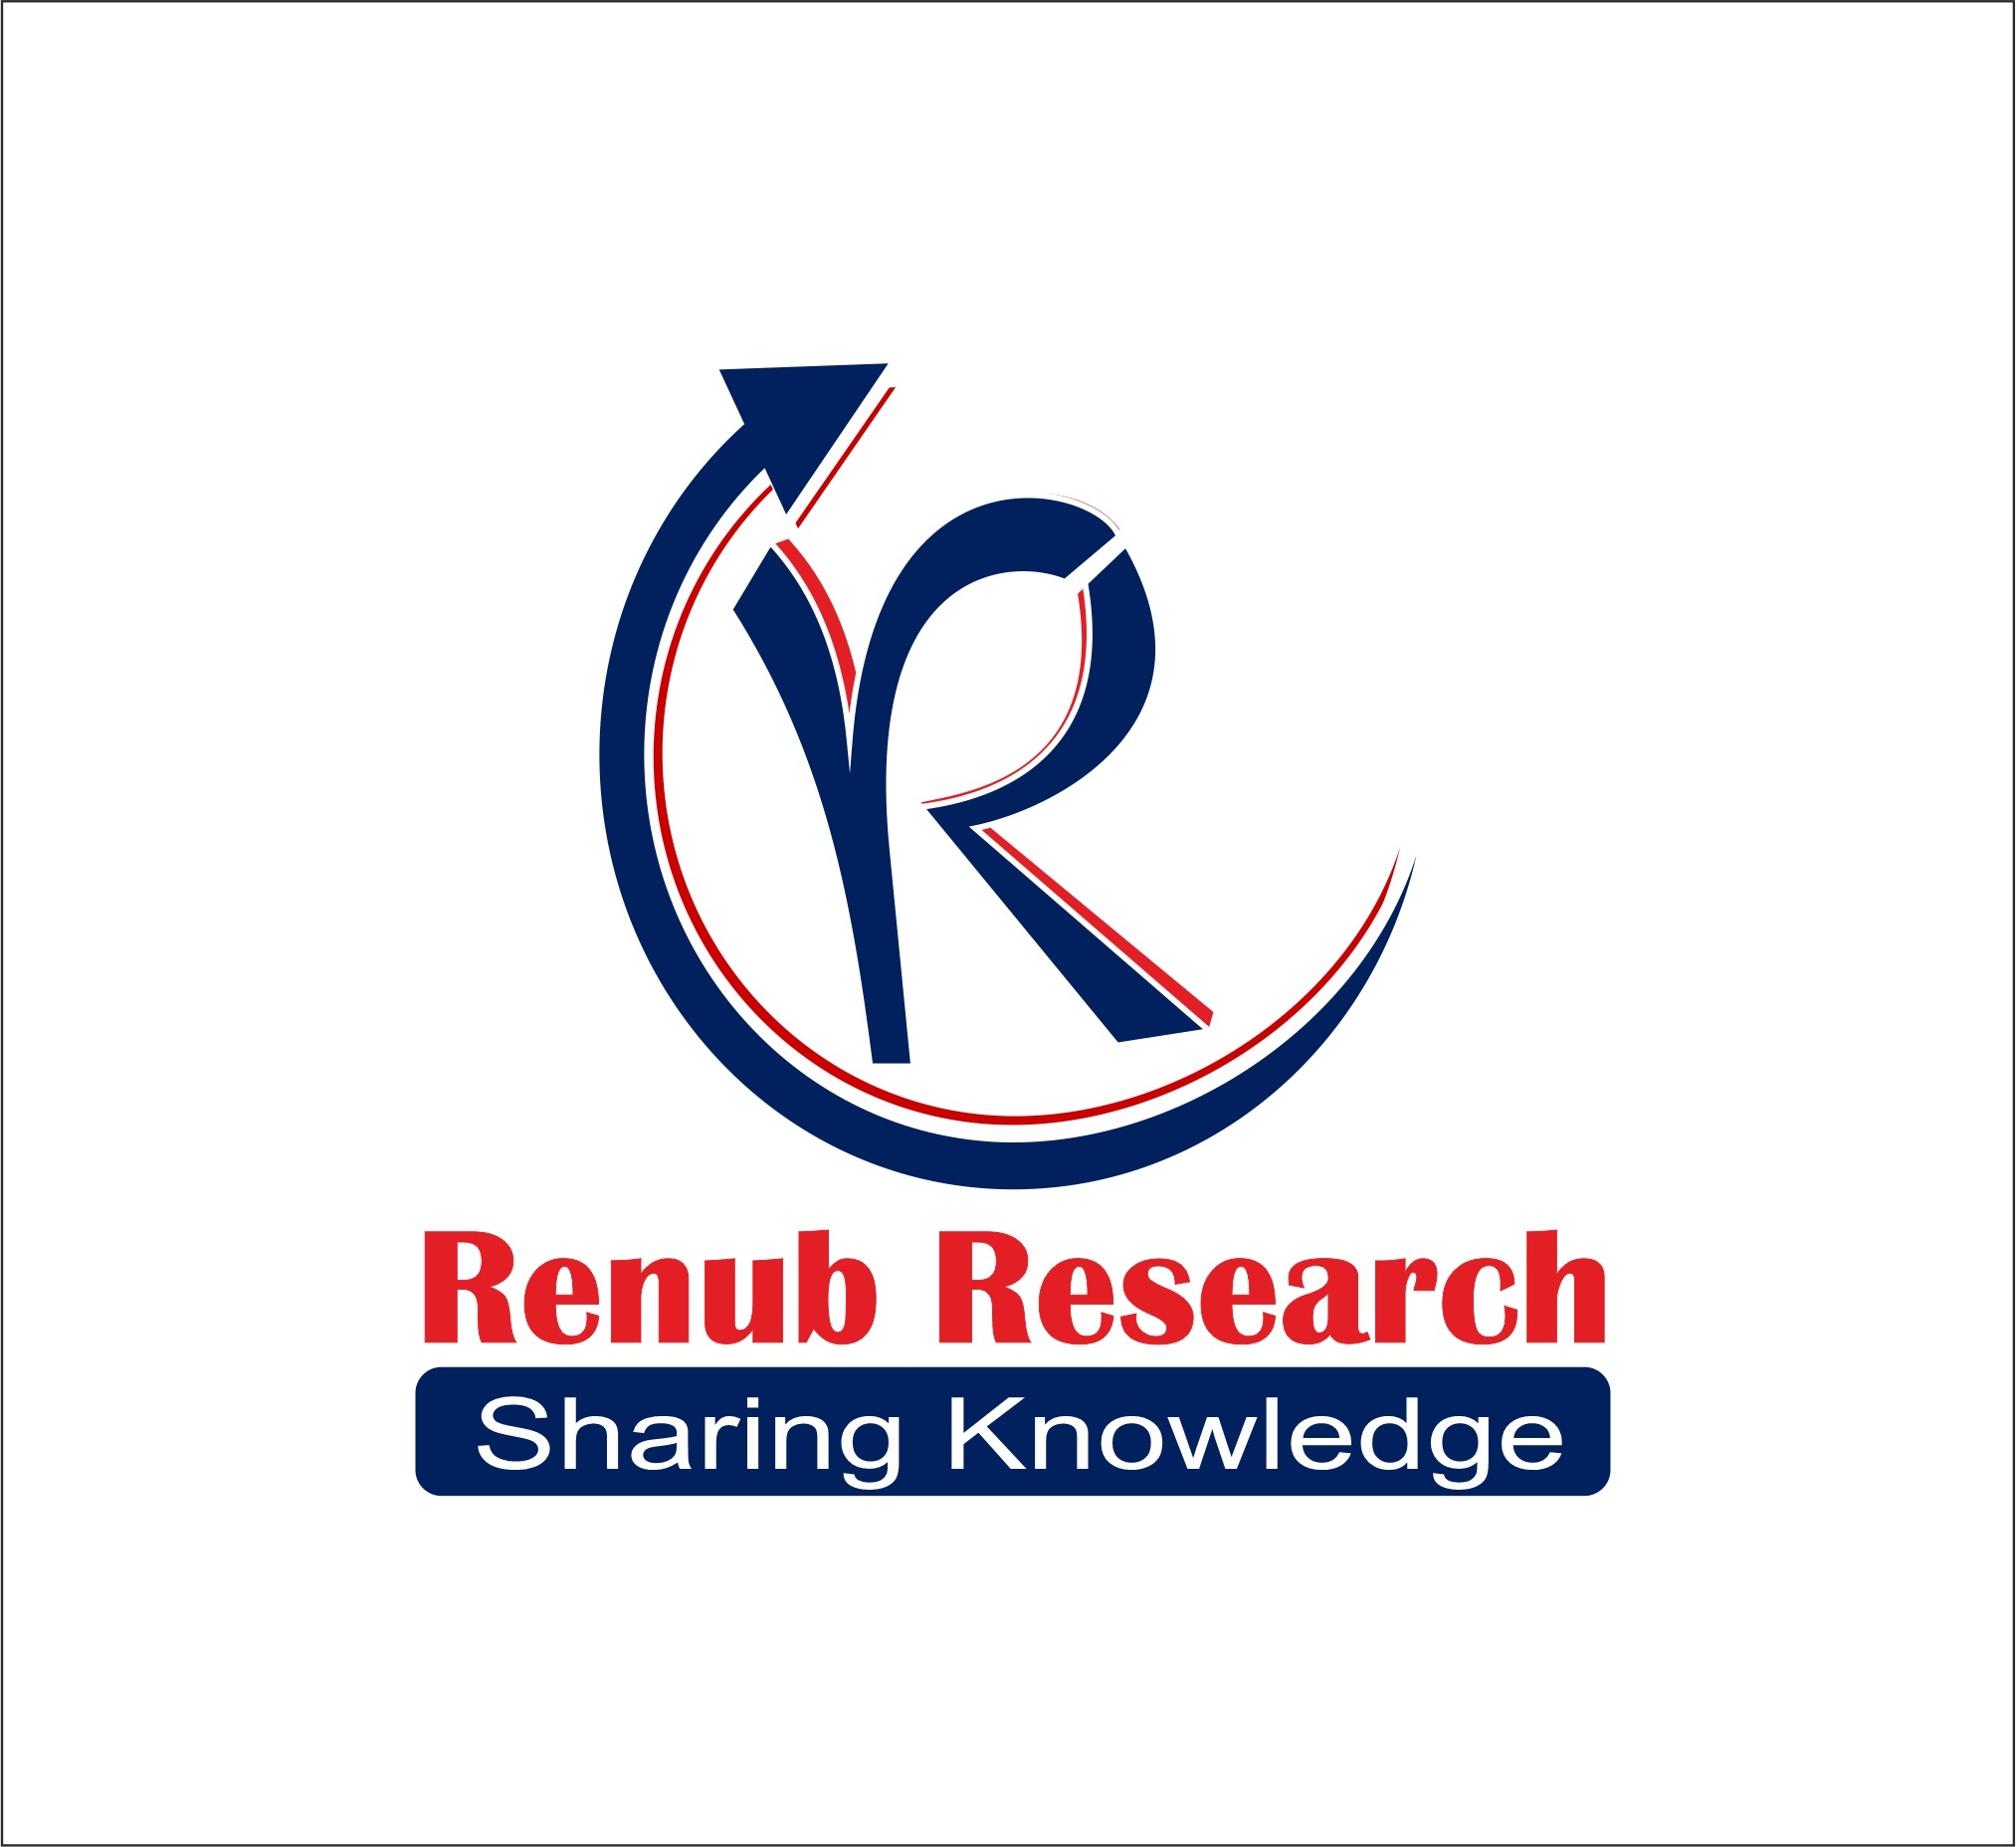 Spain Hotel Market is anticipated to reach USD 24.1 Billion by the end of the year 2025 - Renub Research